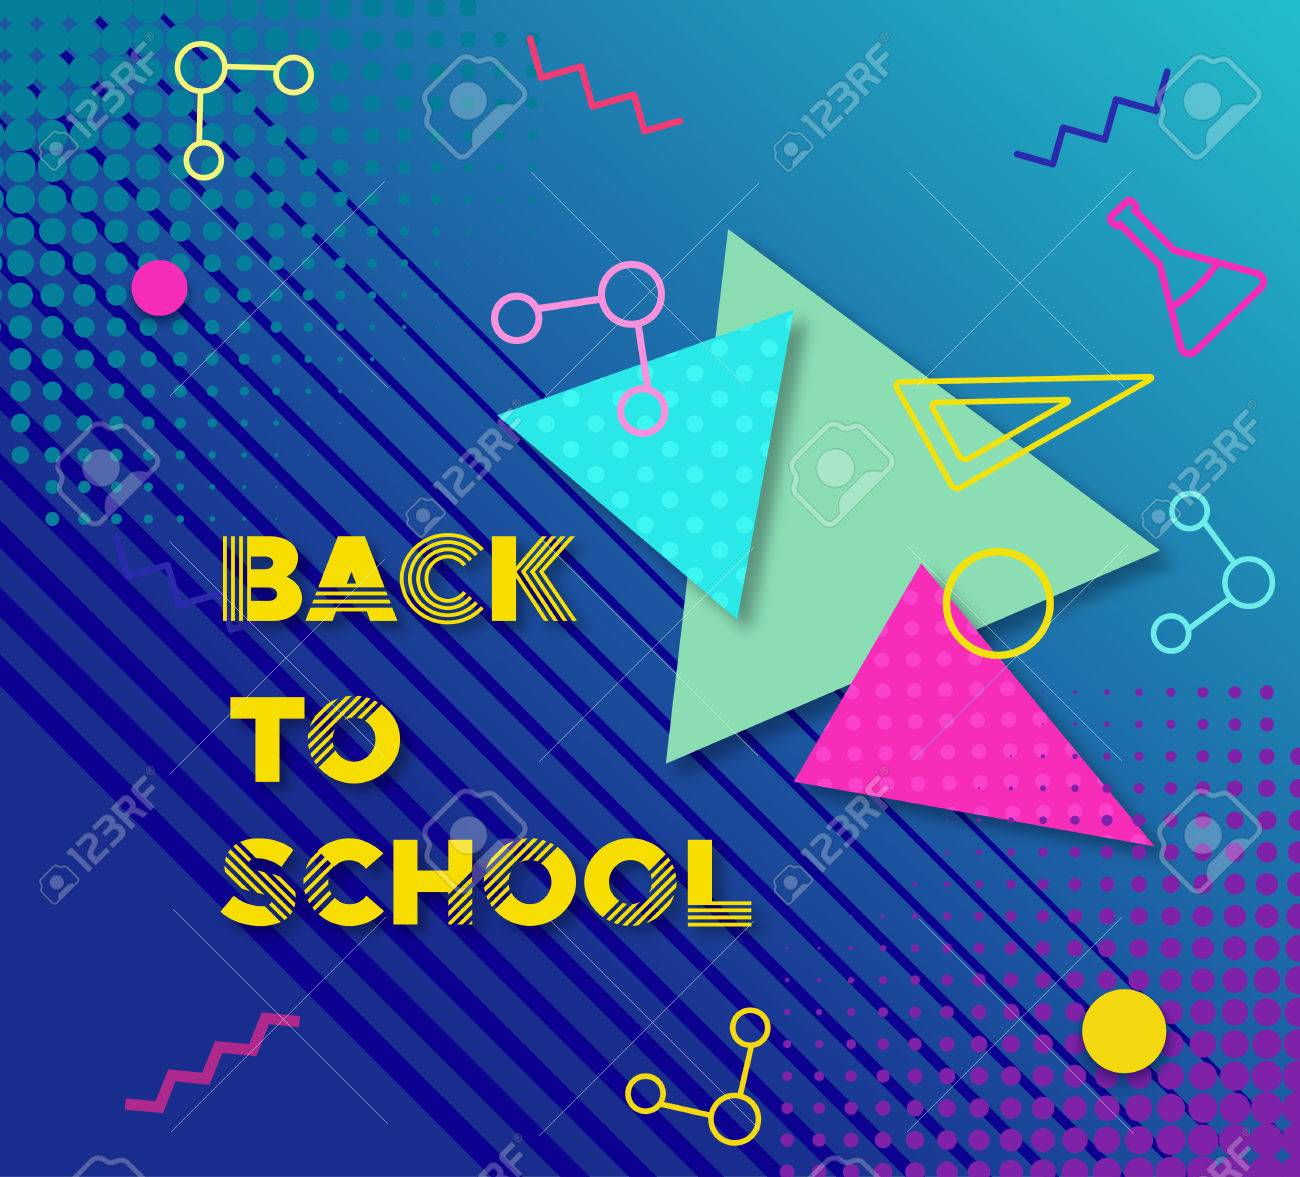 Back To School Banner In Trendy 90s Geometric Style With Lines